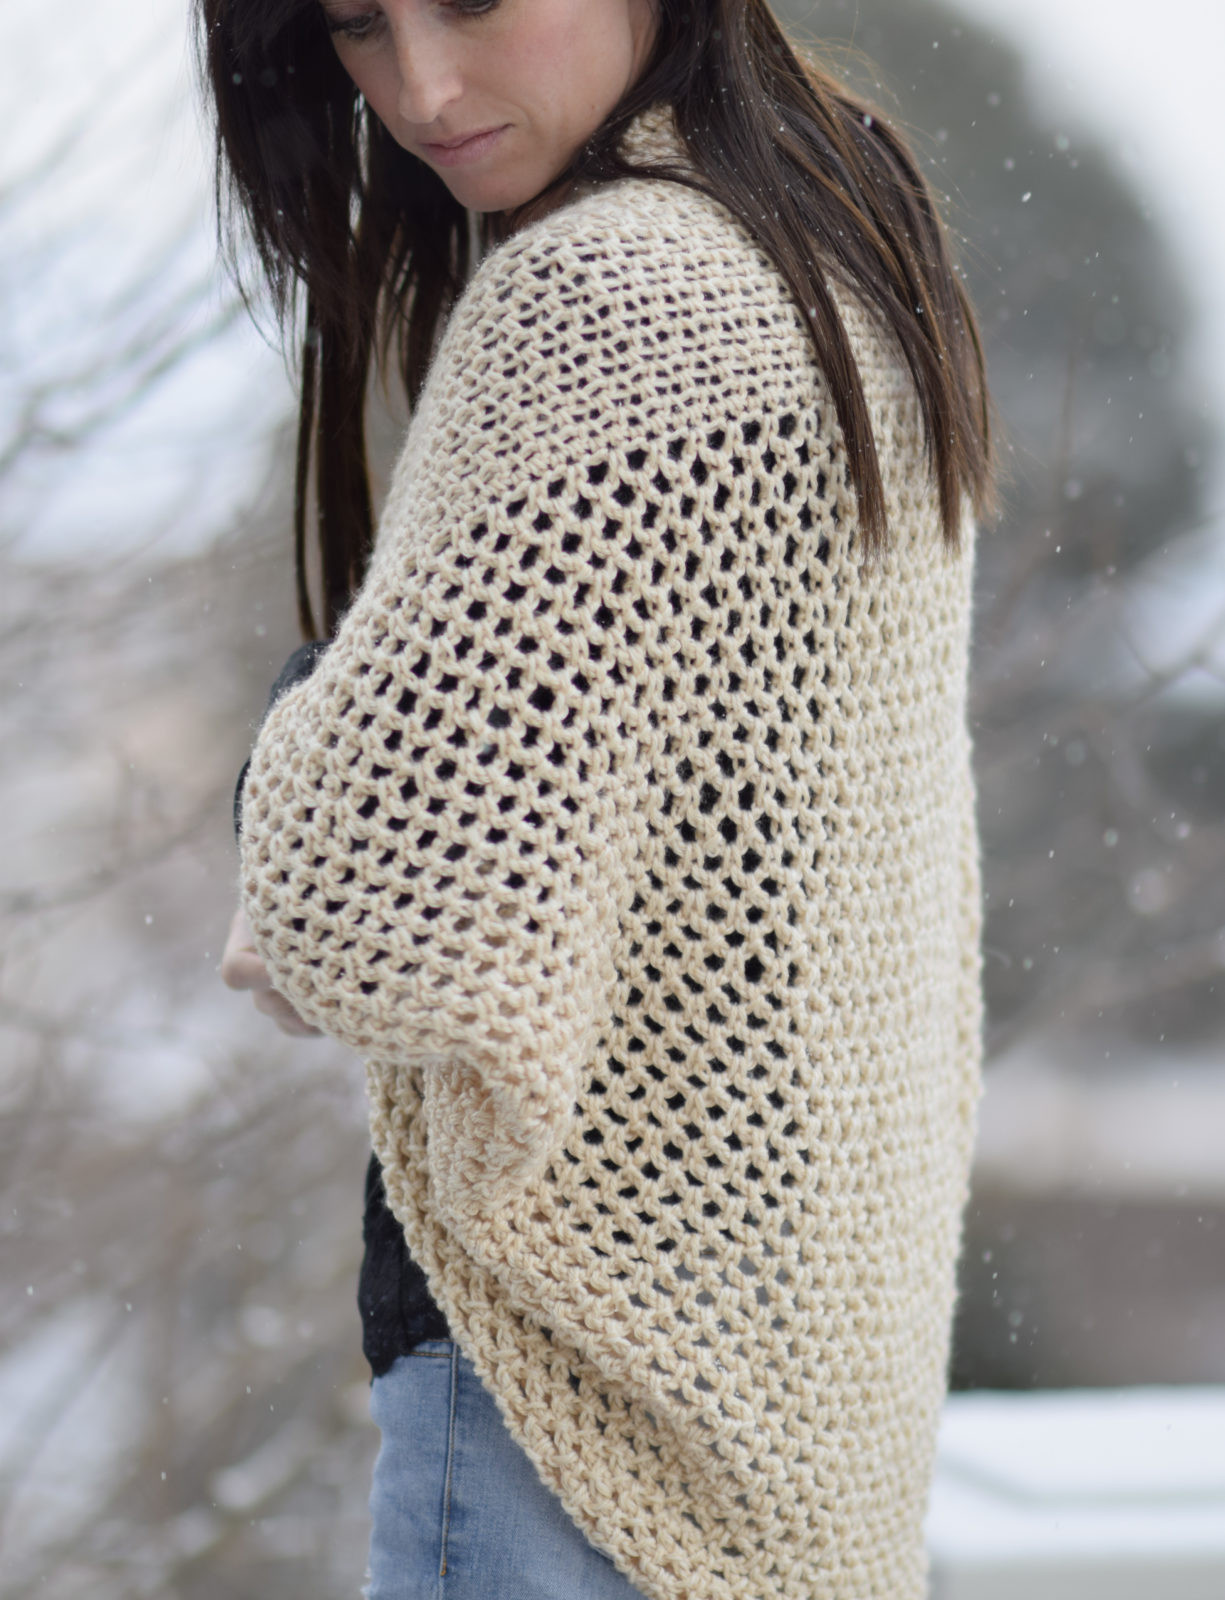 Best Of Mod Mesh Honey Blanket Sweater – Mama In A Stitch Easy Crochet Sweater Pattern Of Elegant Telluride Easy Knit Kimono Pattern – Mama In A Stitch Easy Crochet Sweater Pattern